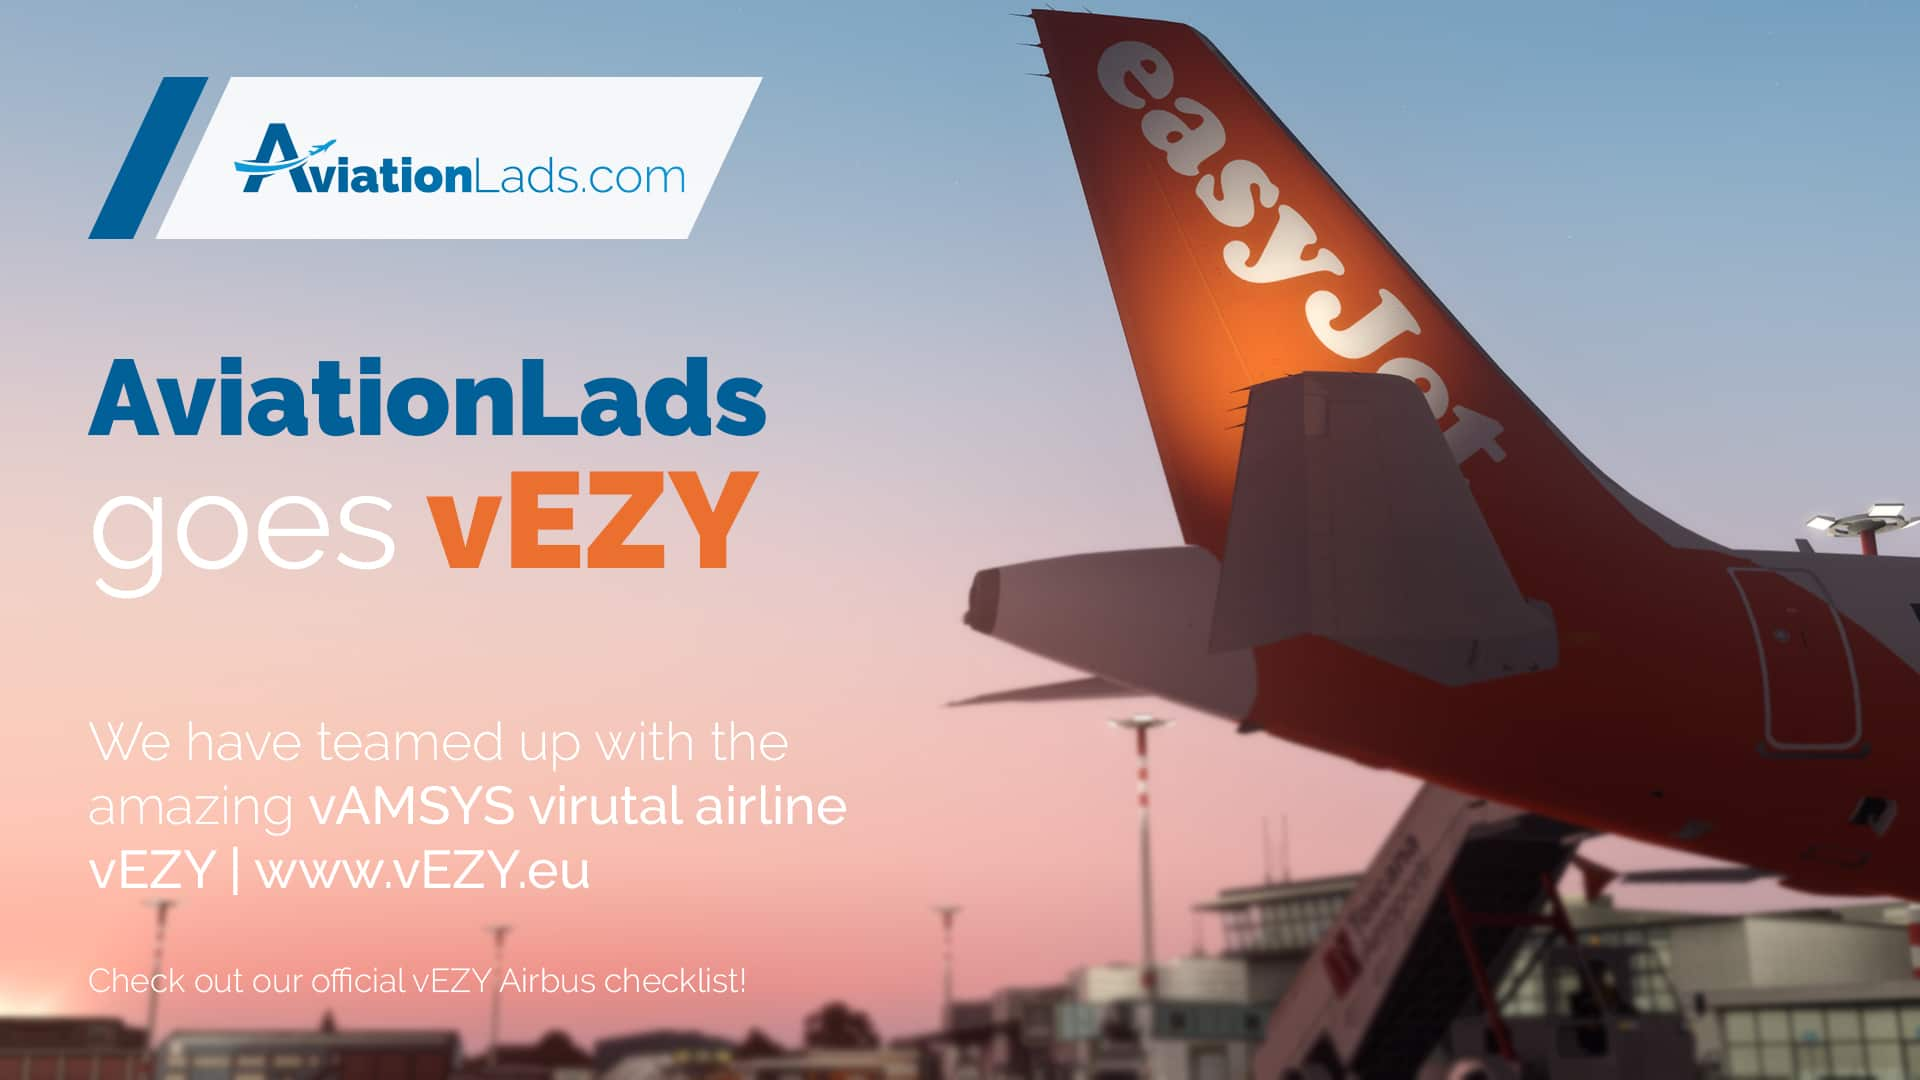 [Partner] vEZY | vAMSYS Virtual Airline